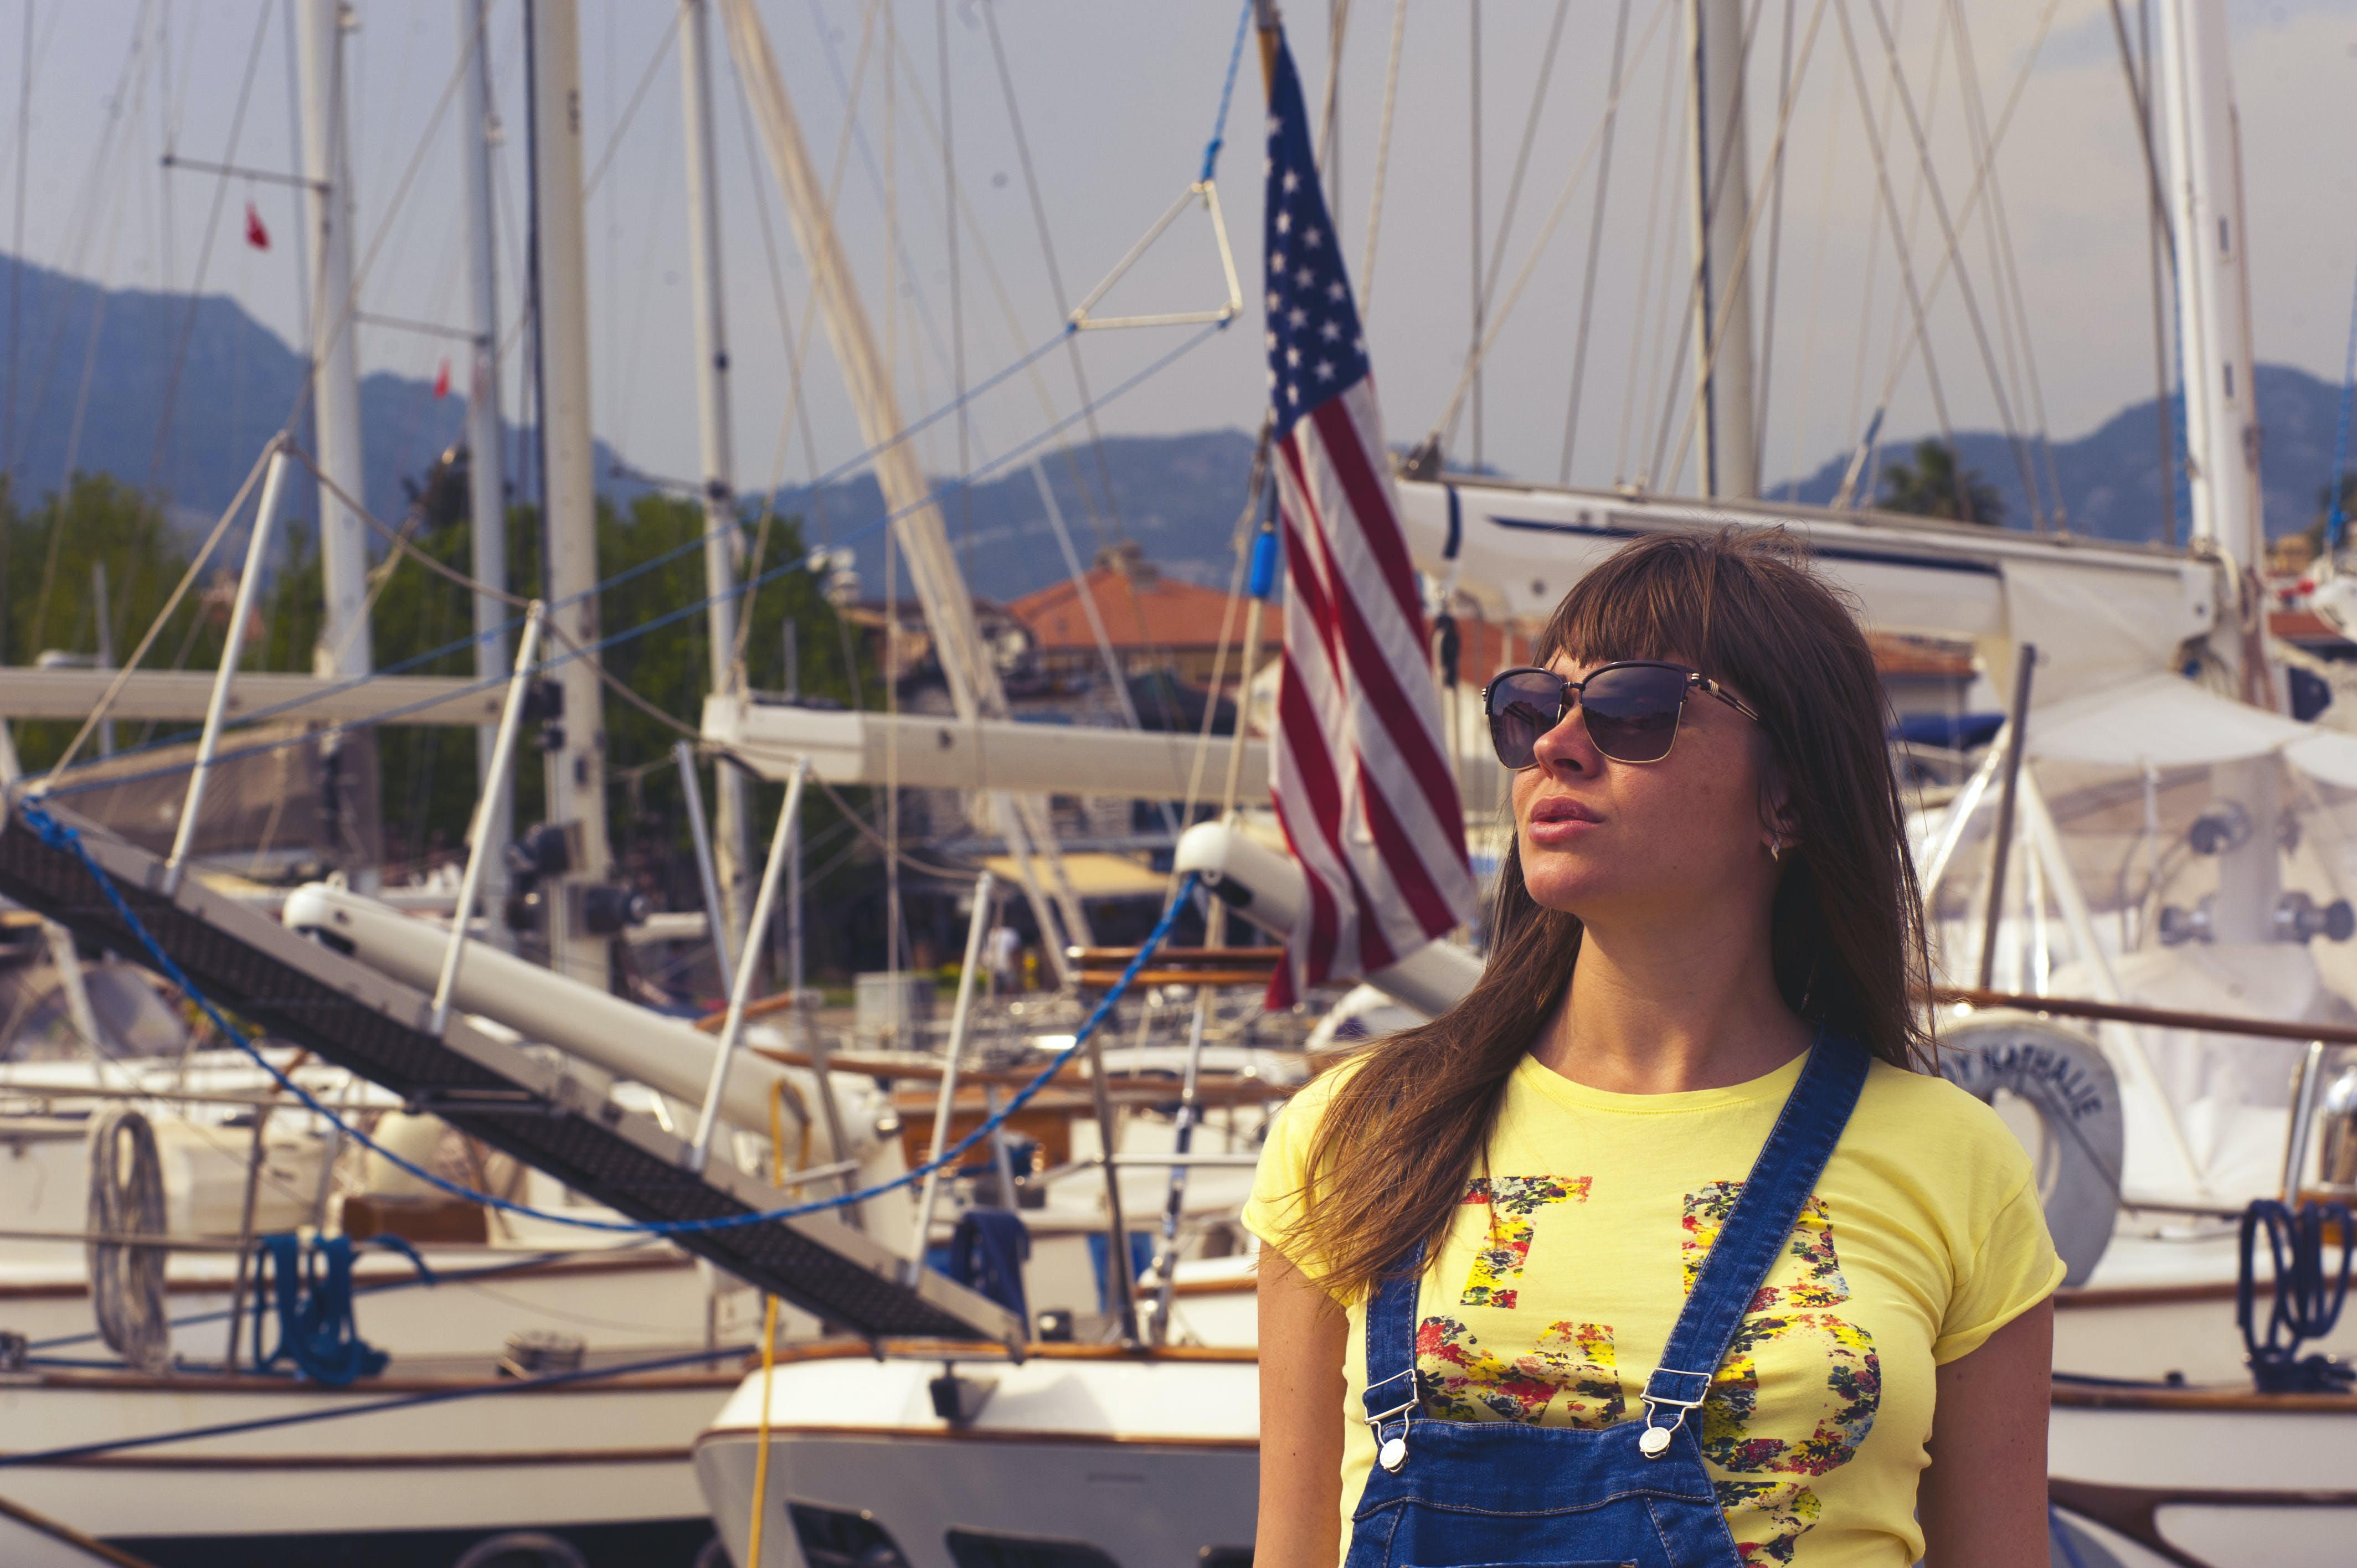 Woman Wearing Sunglasses and Yellow Top